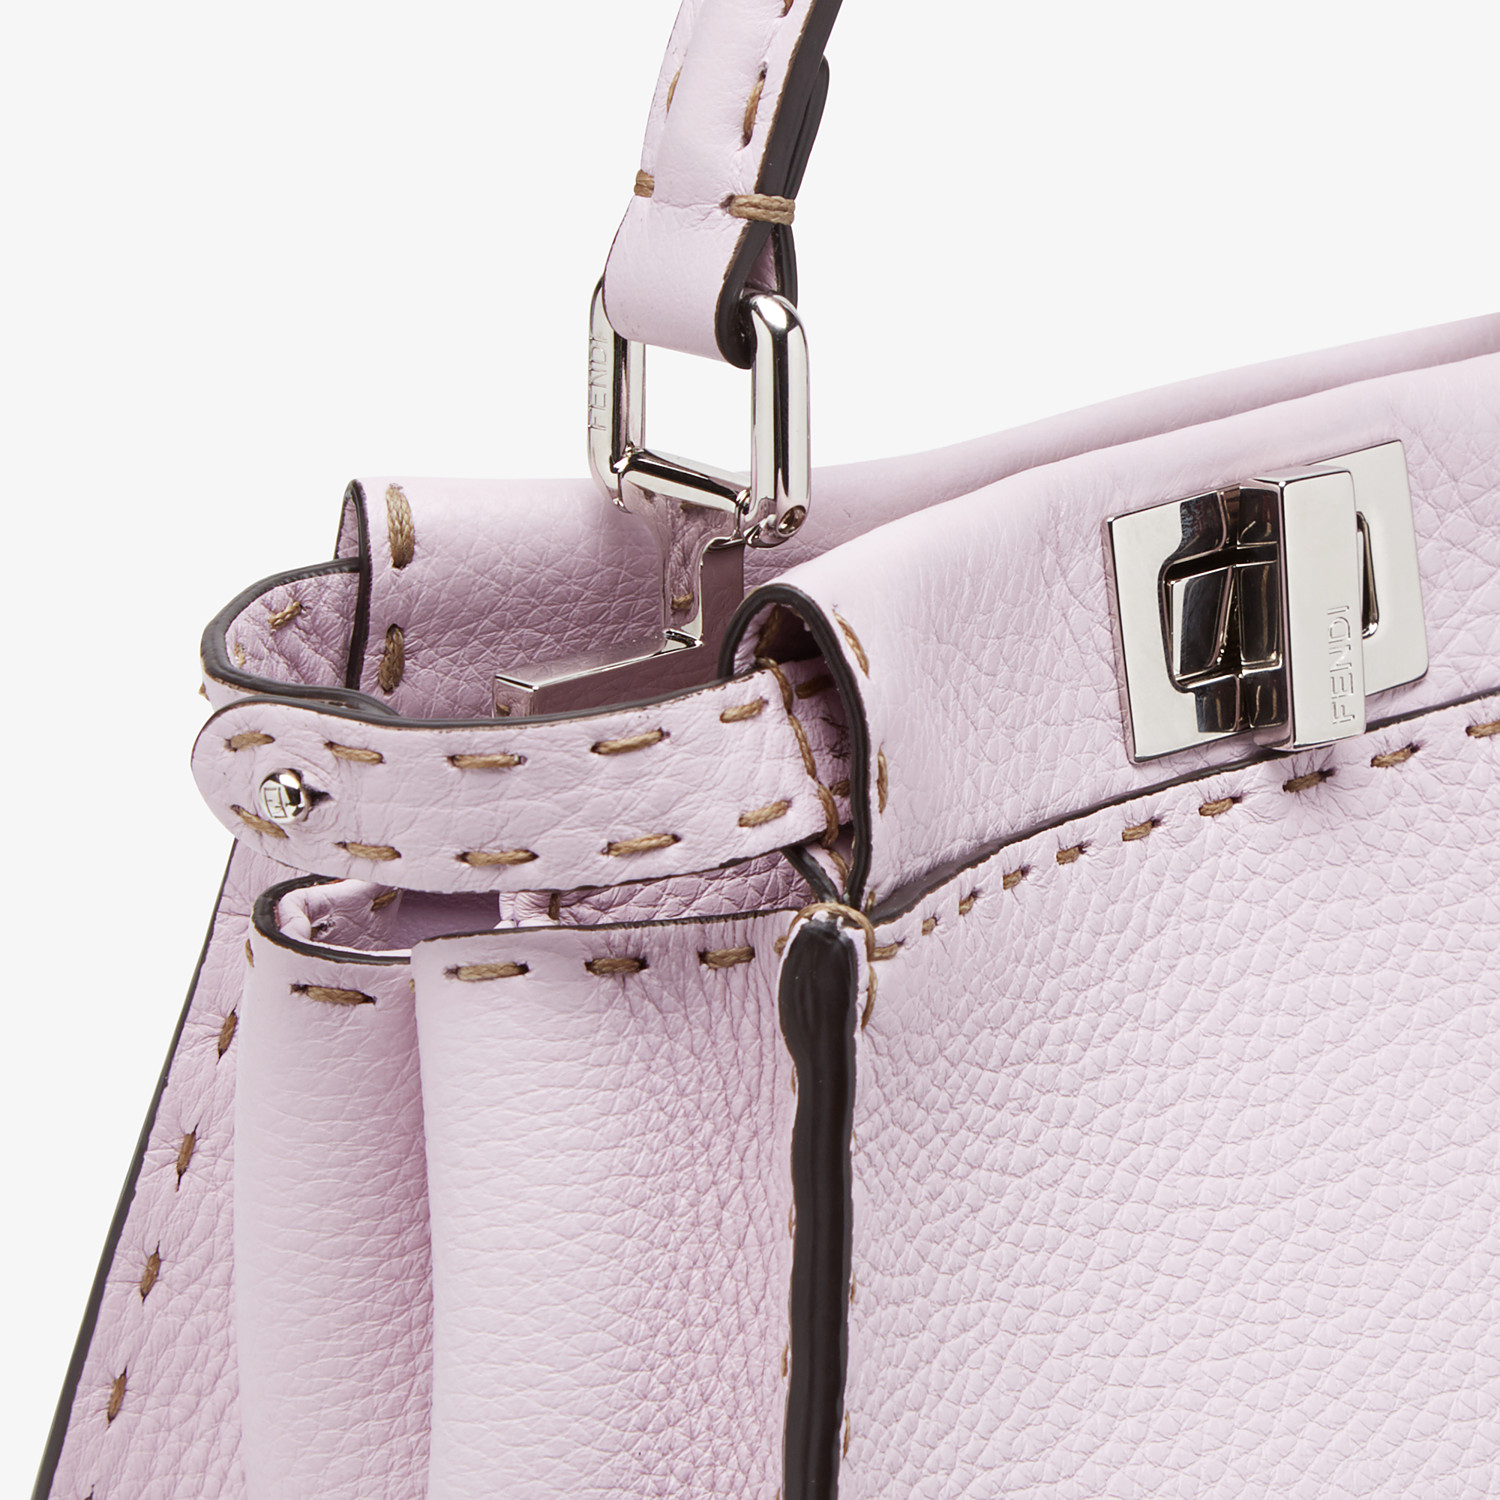 FENDI PEEKABOO ICONIC MINI - Lilac Selleria bag - view 6 detail